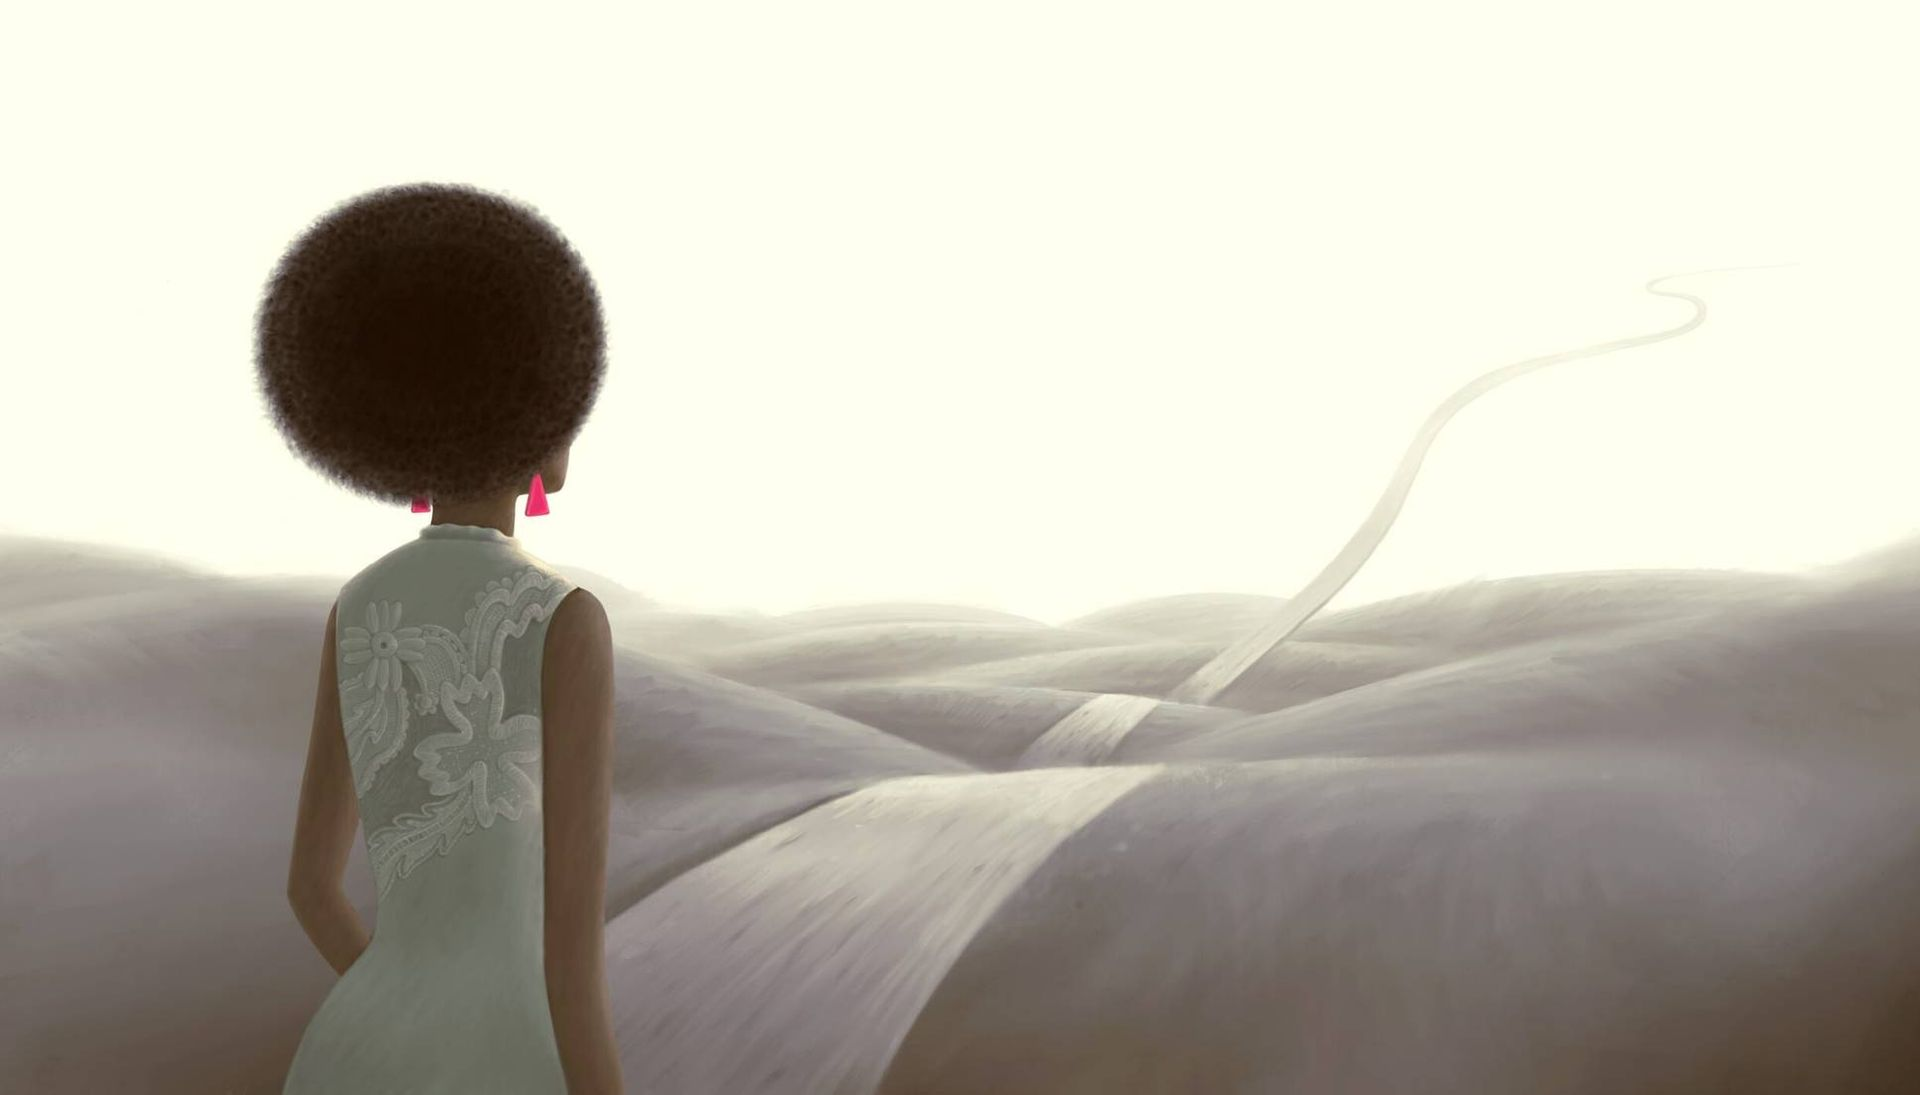 Illustration of black woman looking out a surreal landscape with a path rising into the sky